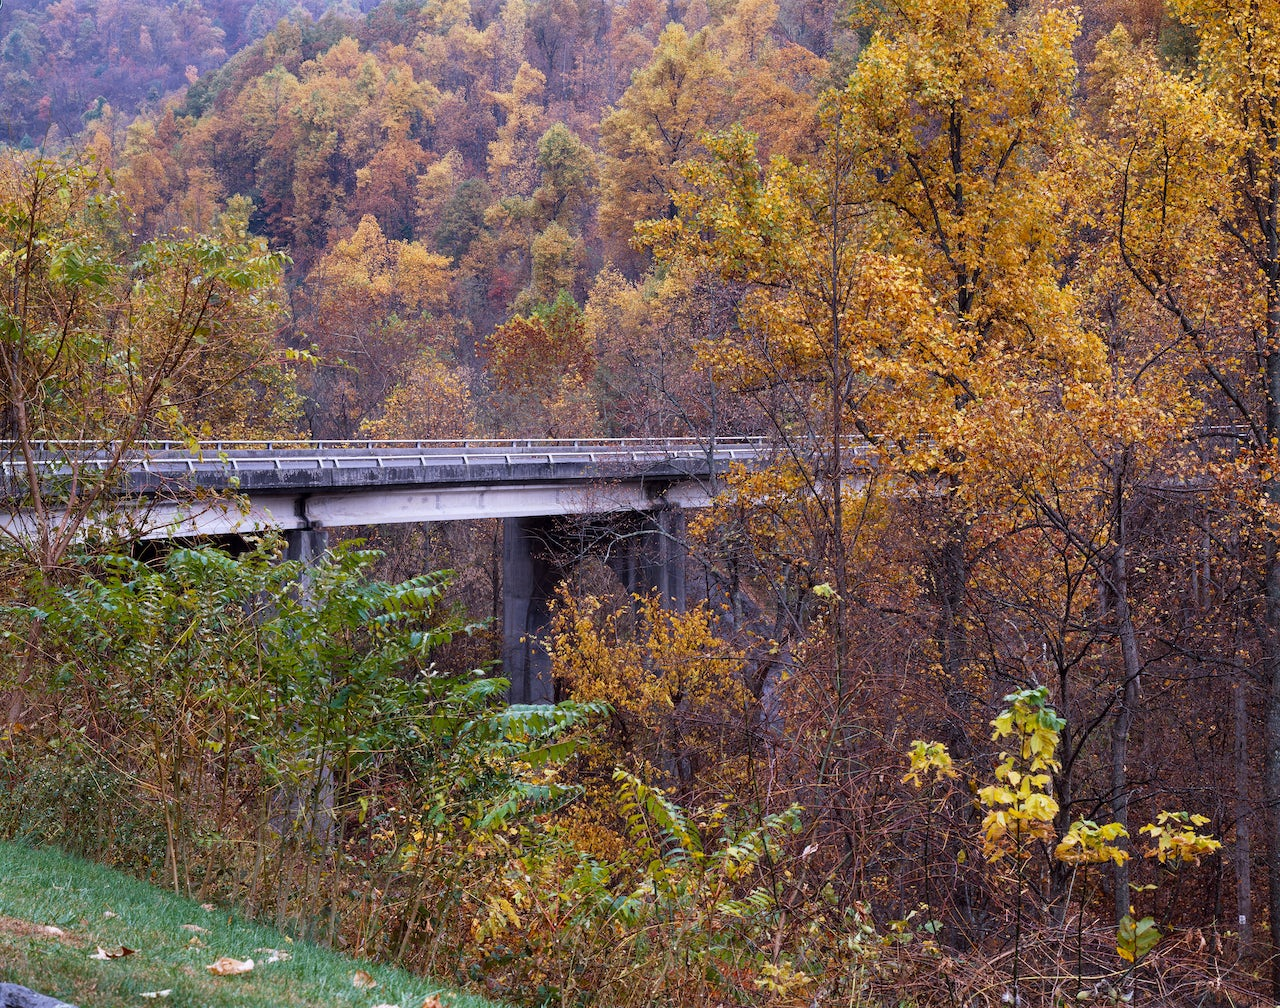 North Carolina's Blue Ridge Parkway in fall 2004.